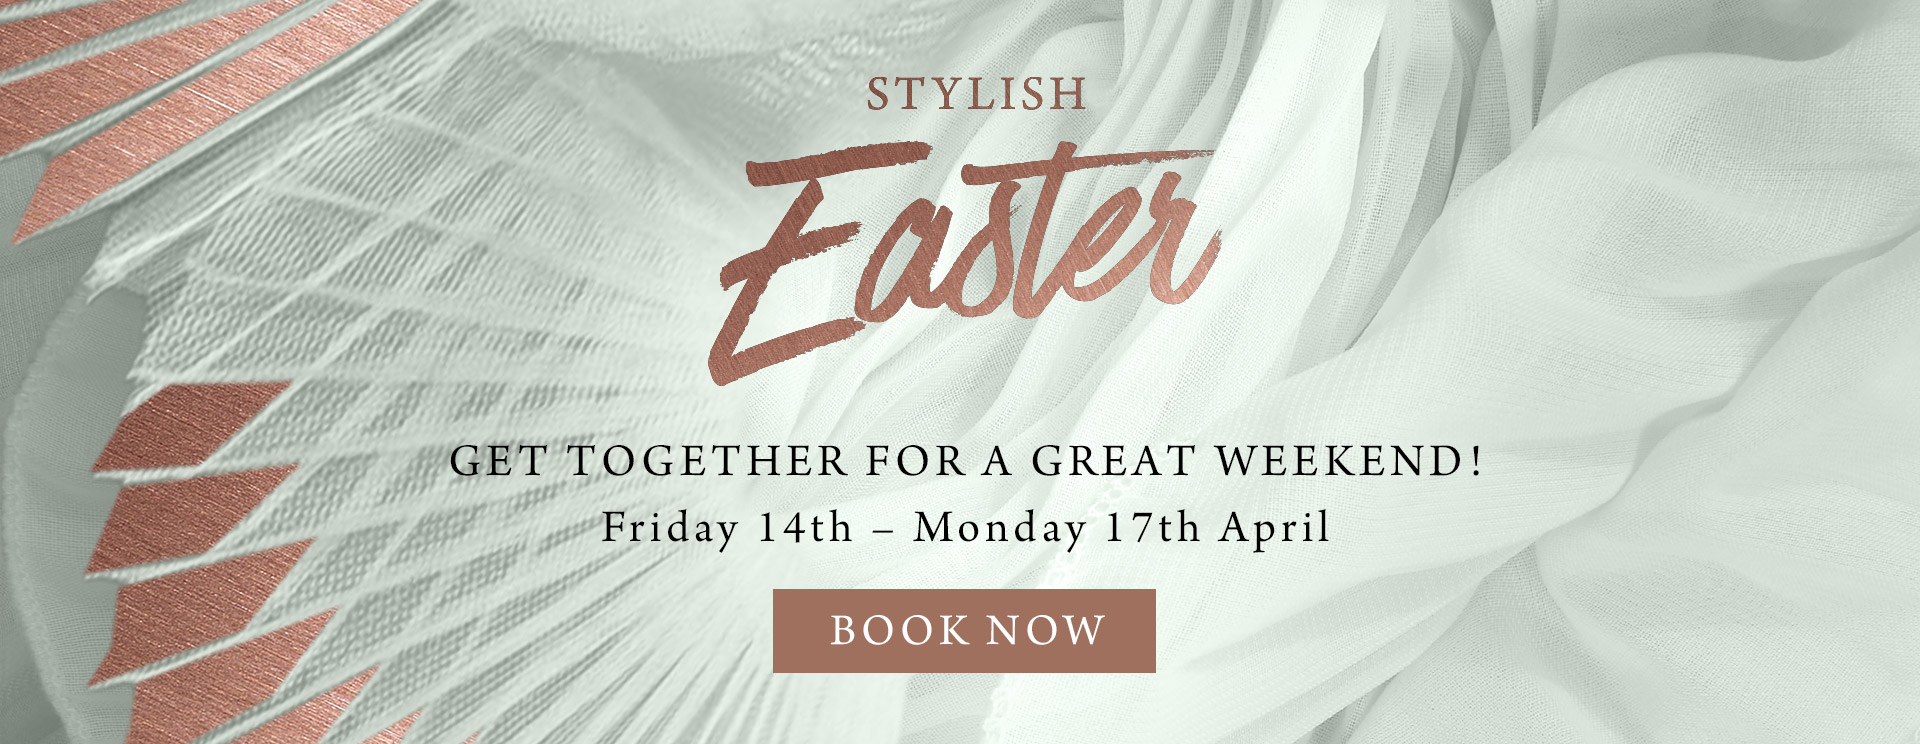 Stylish Easter at The Dukes Head - Book now